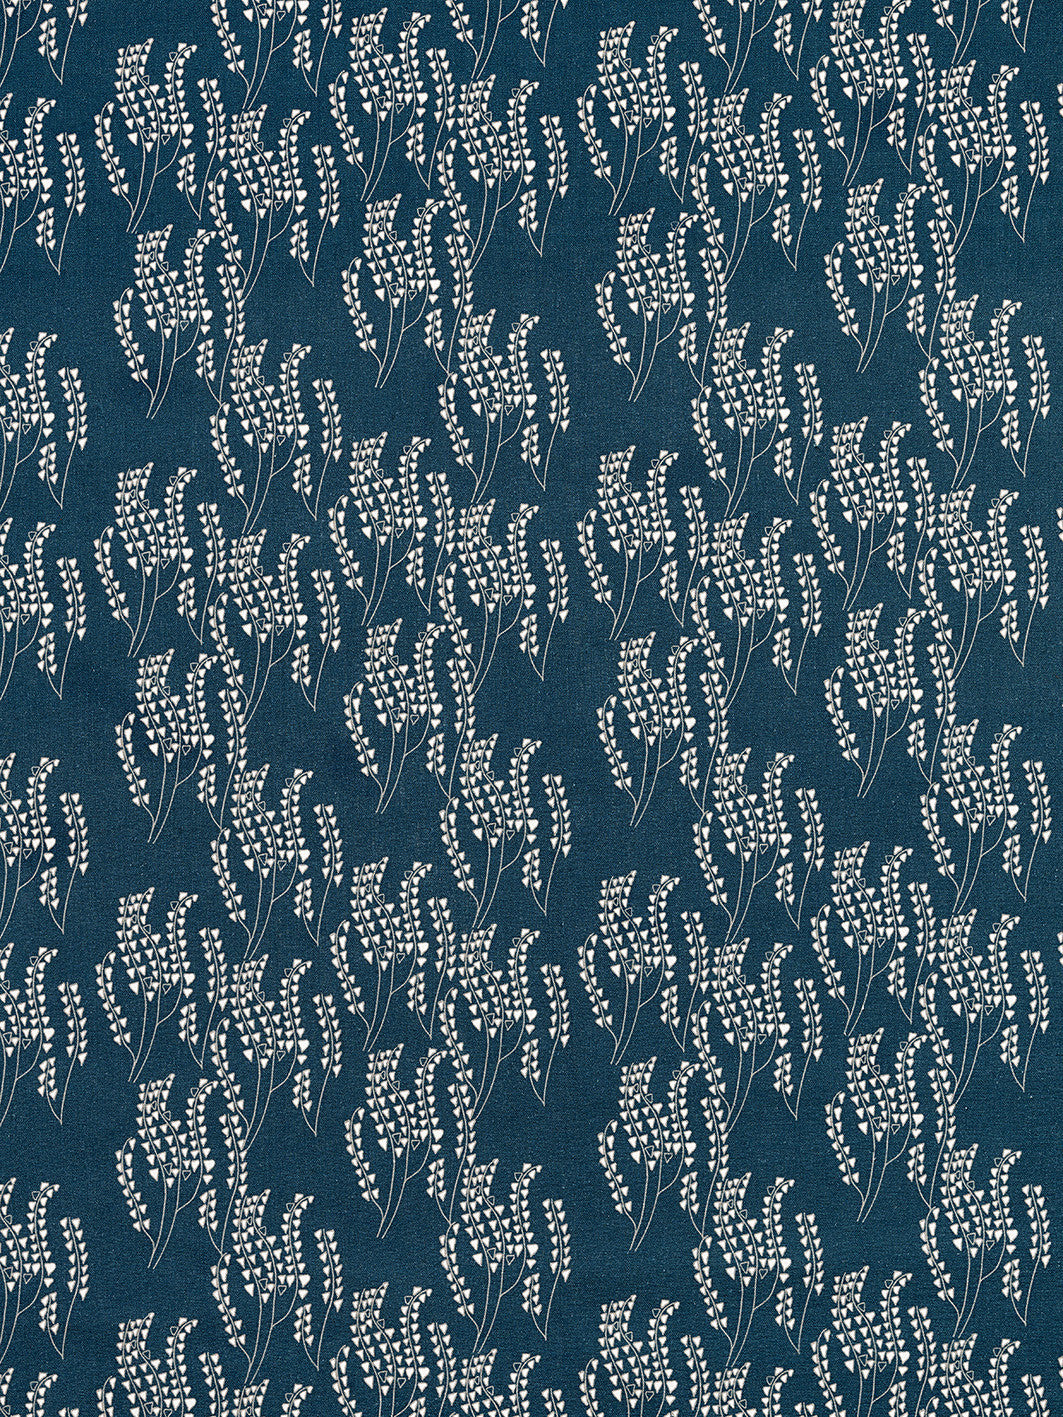 Maricopa Graphic Floral Pattern Cotton Linen Home Decor Fabric by the meter or by the yard for curtains, blinds or upholstery in Dark Petrol Blue and Grey ships from Canada worldwide (USA)